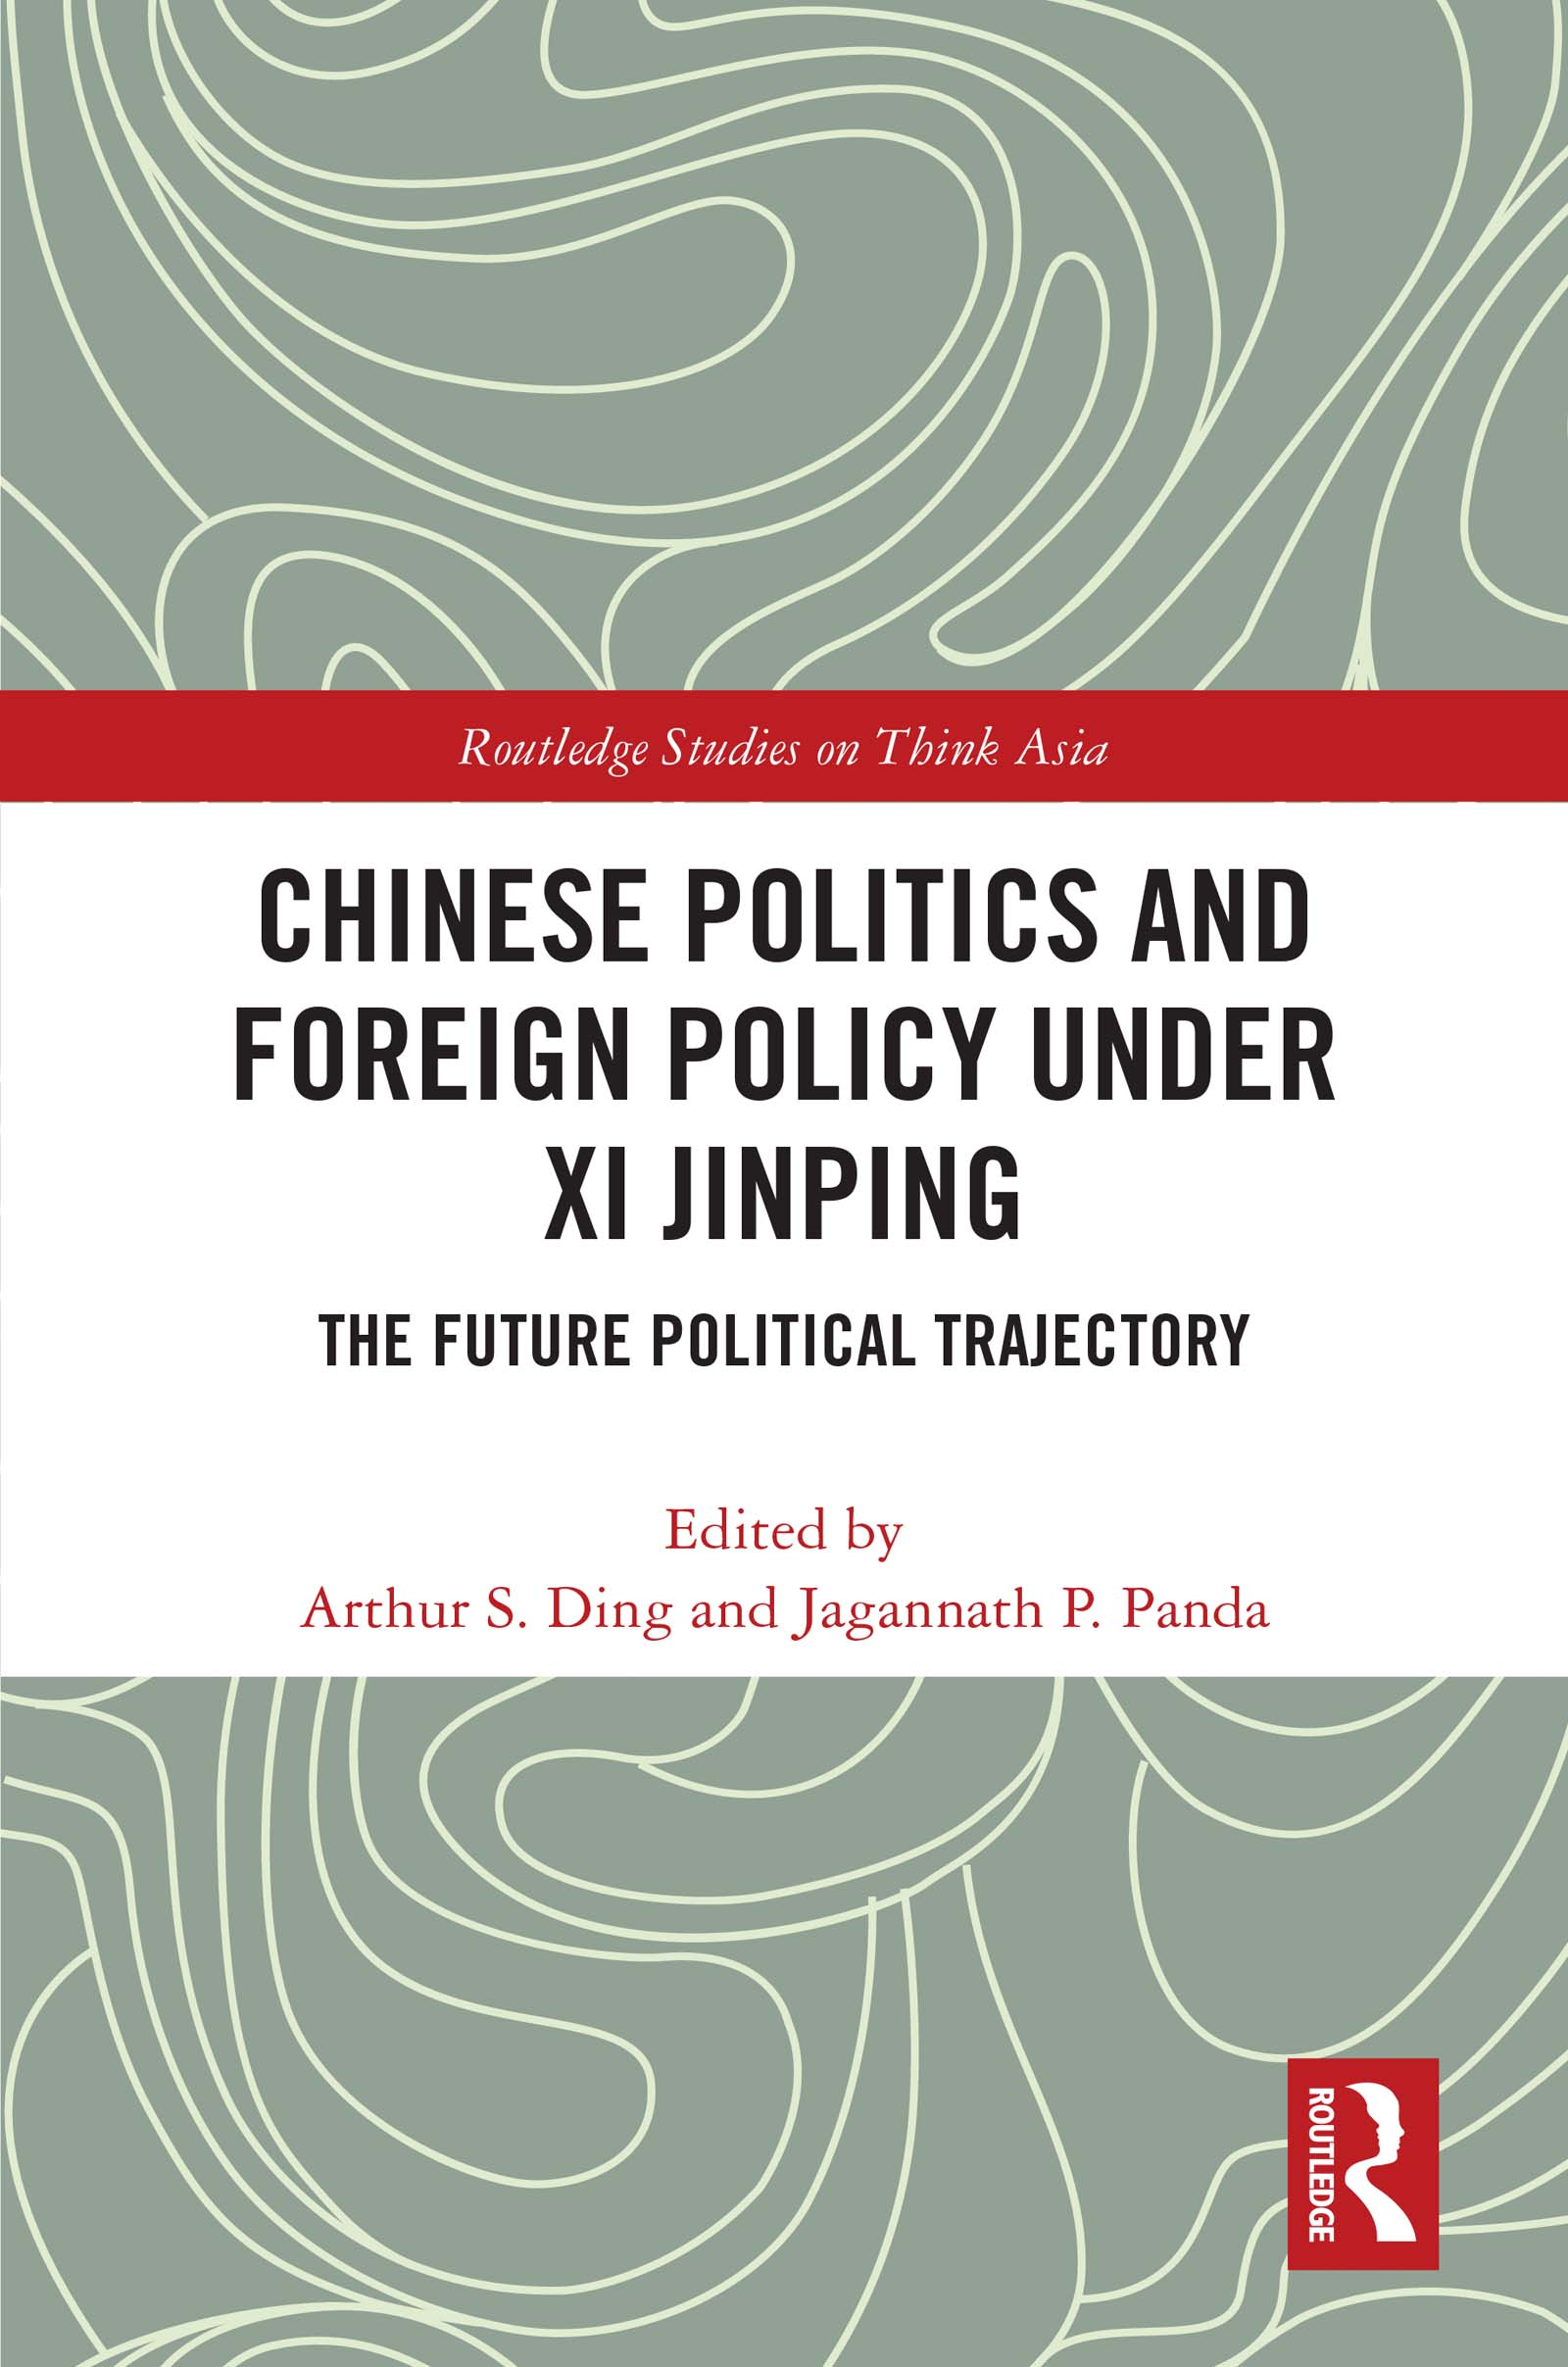 Social governance in                         China under Xi Jinping